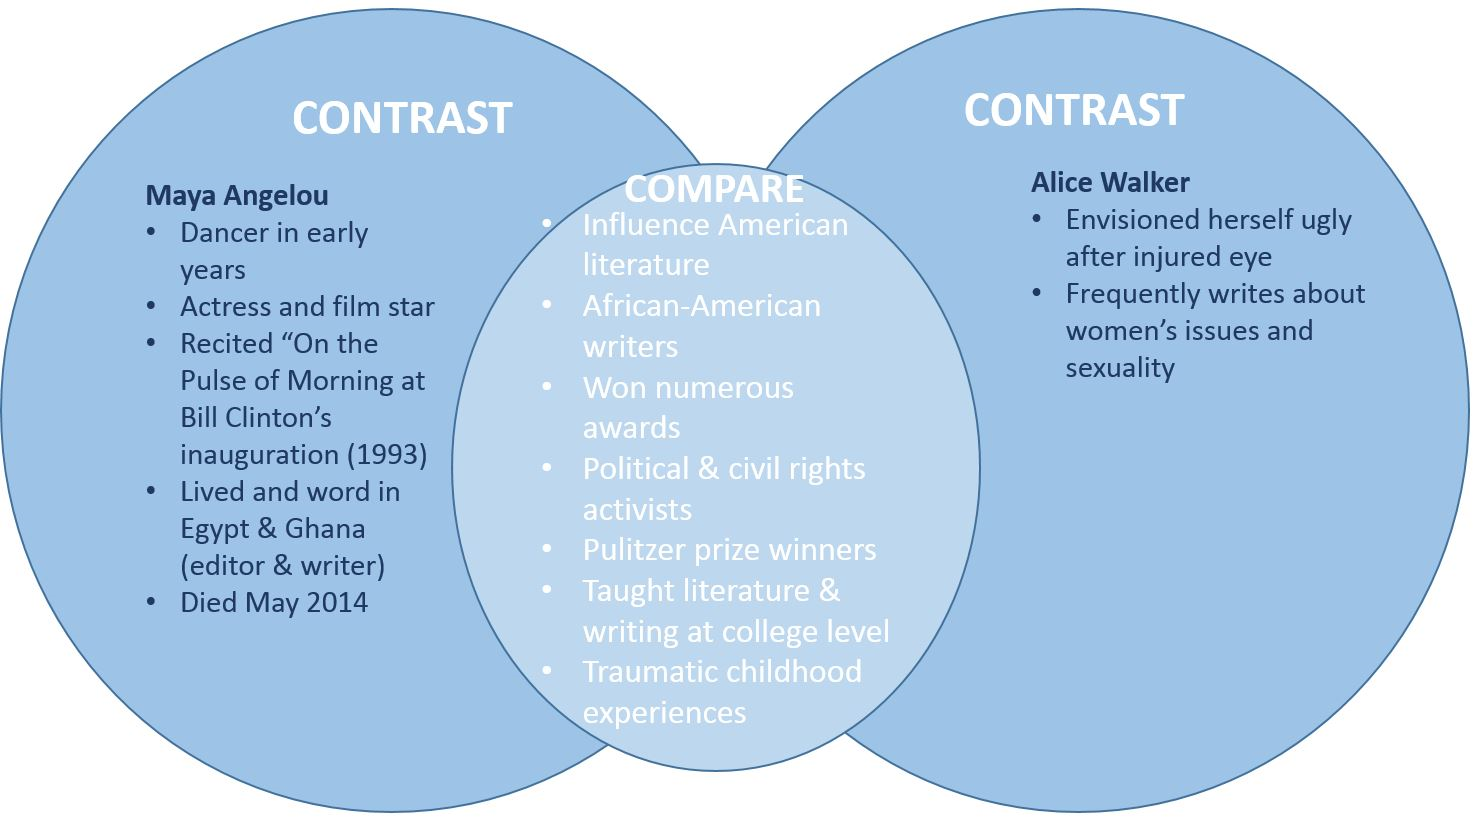 compare contrast essay literature A compare and contrast essay is used to explore the similarities and differences between different ideas, theories, works of literature, writing styles, or literary periods.